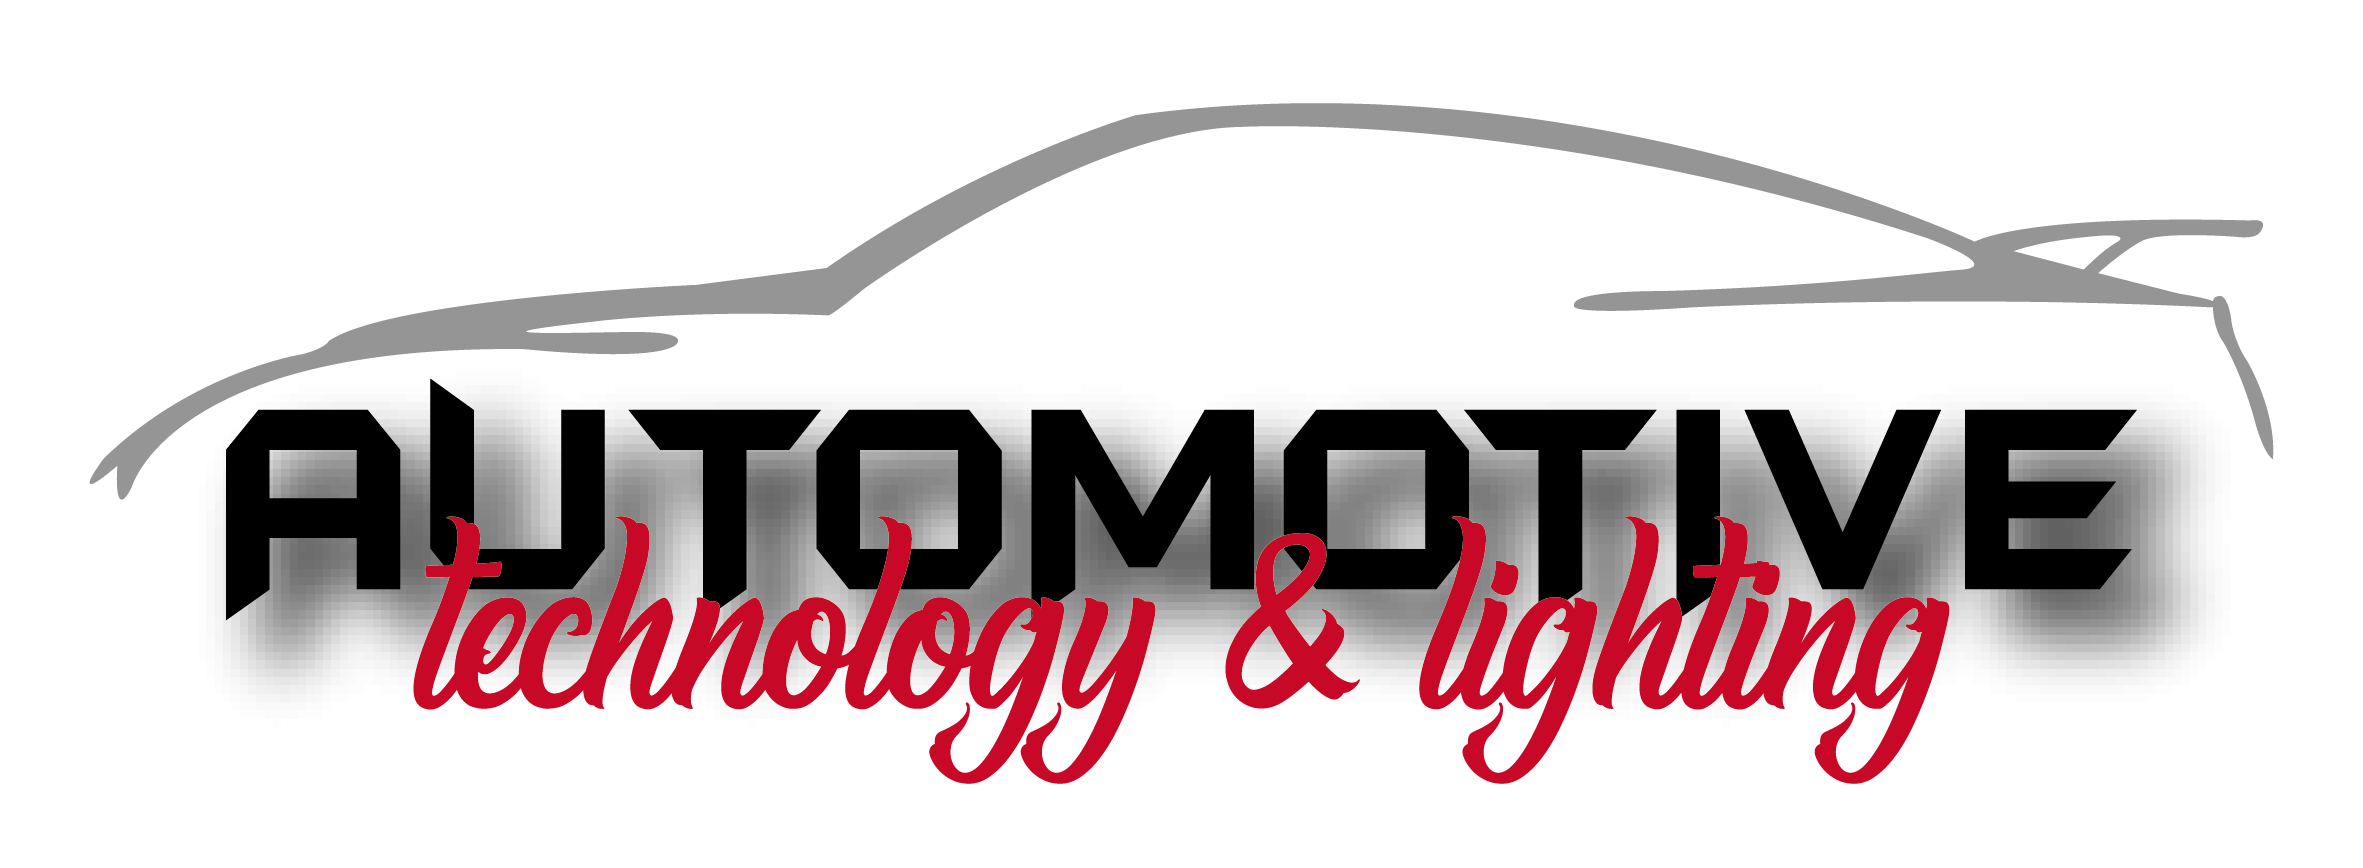 ATL-Automotive, Technology & Lighting